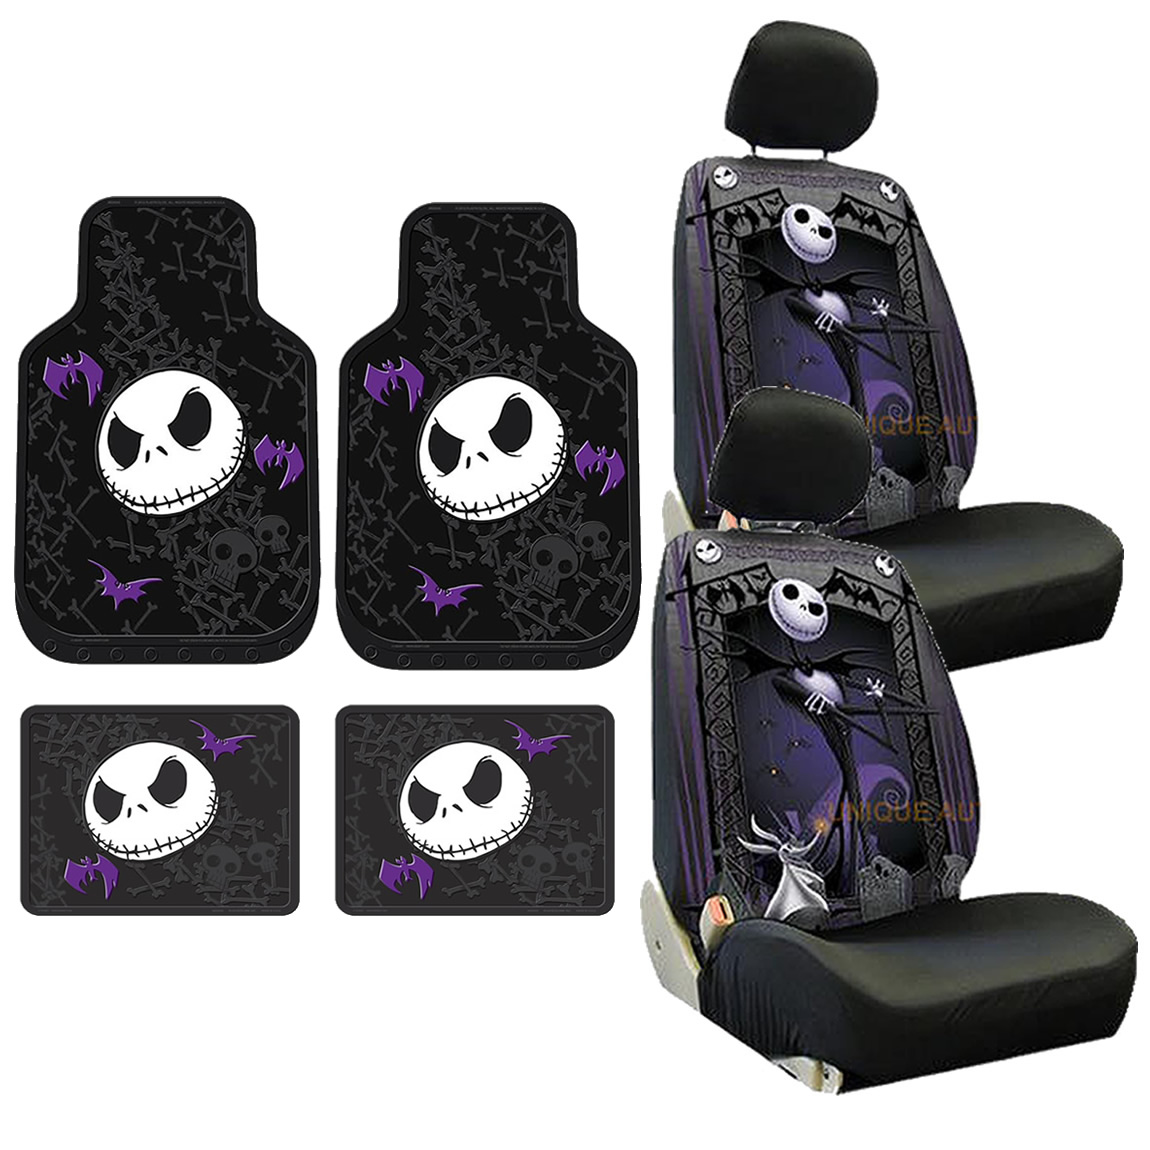 nightmare before christmas chair posture cushion for 90009167 jpg